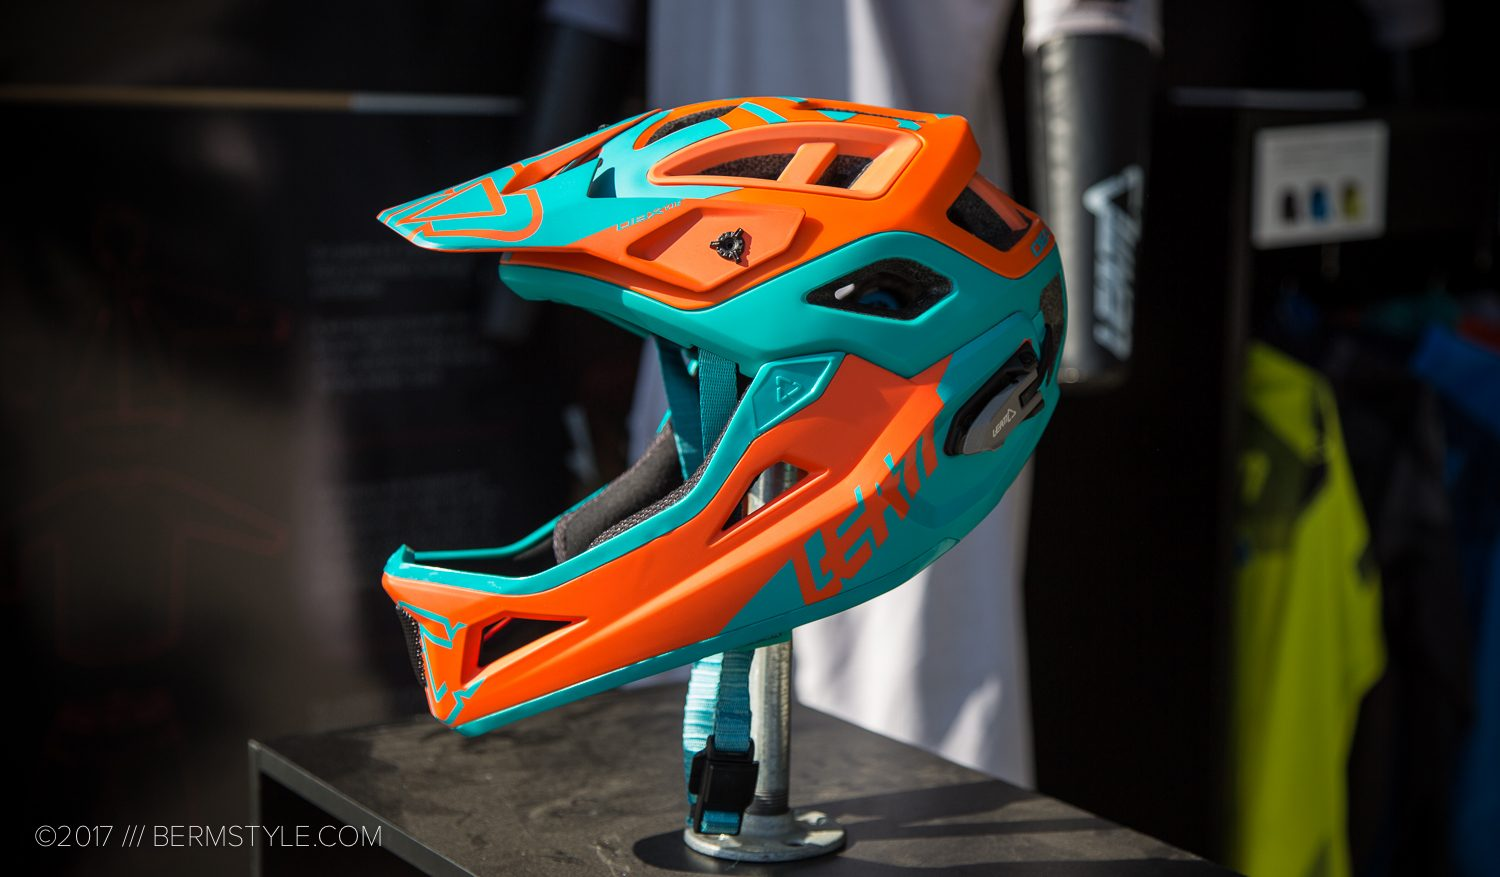 Leatt enduro helmet, the DBX 3.0 Enduro V2.